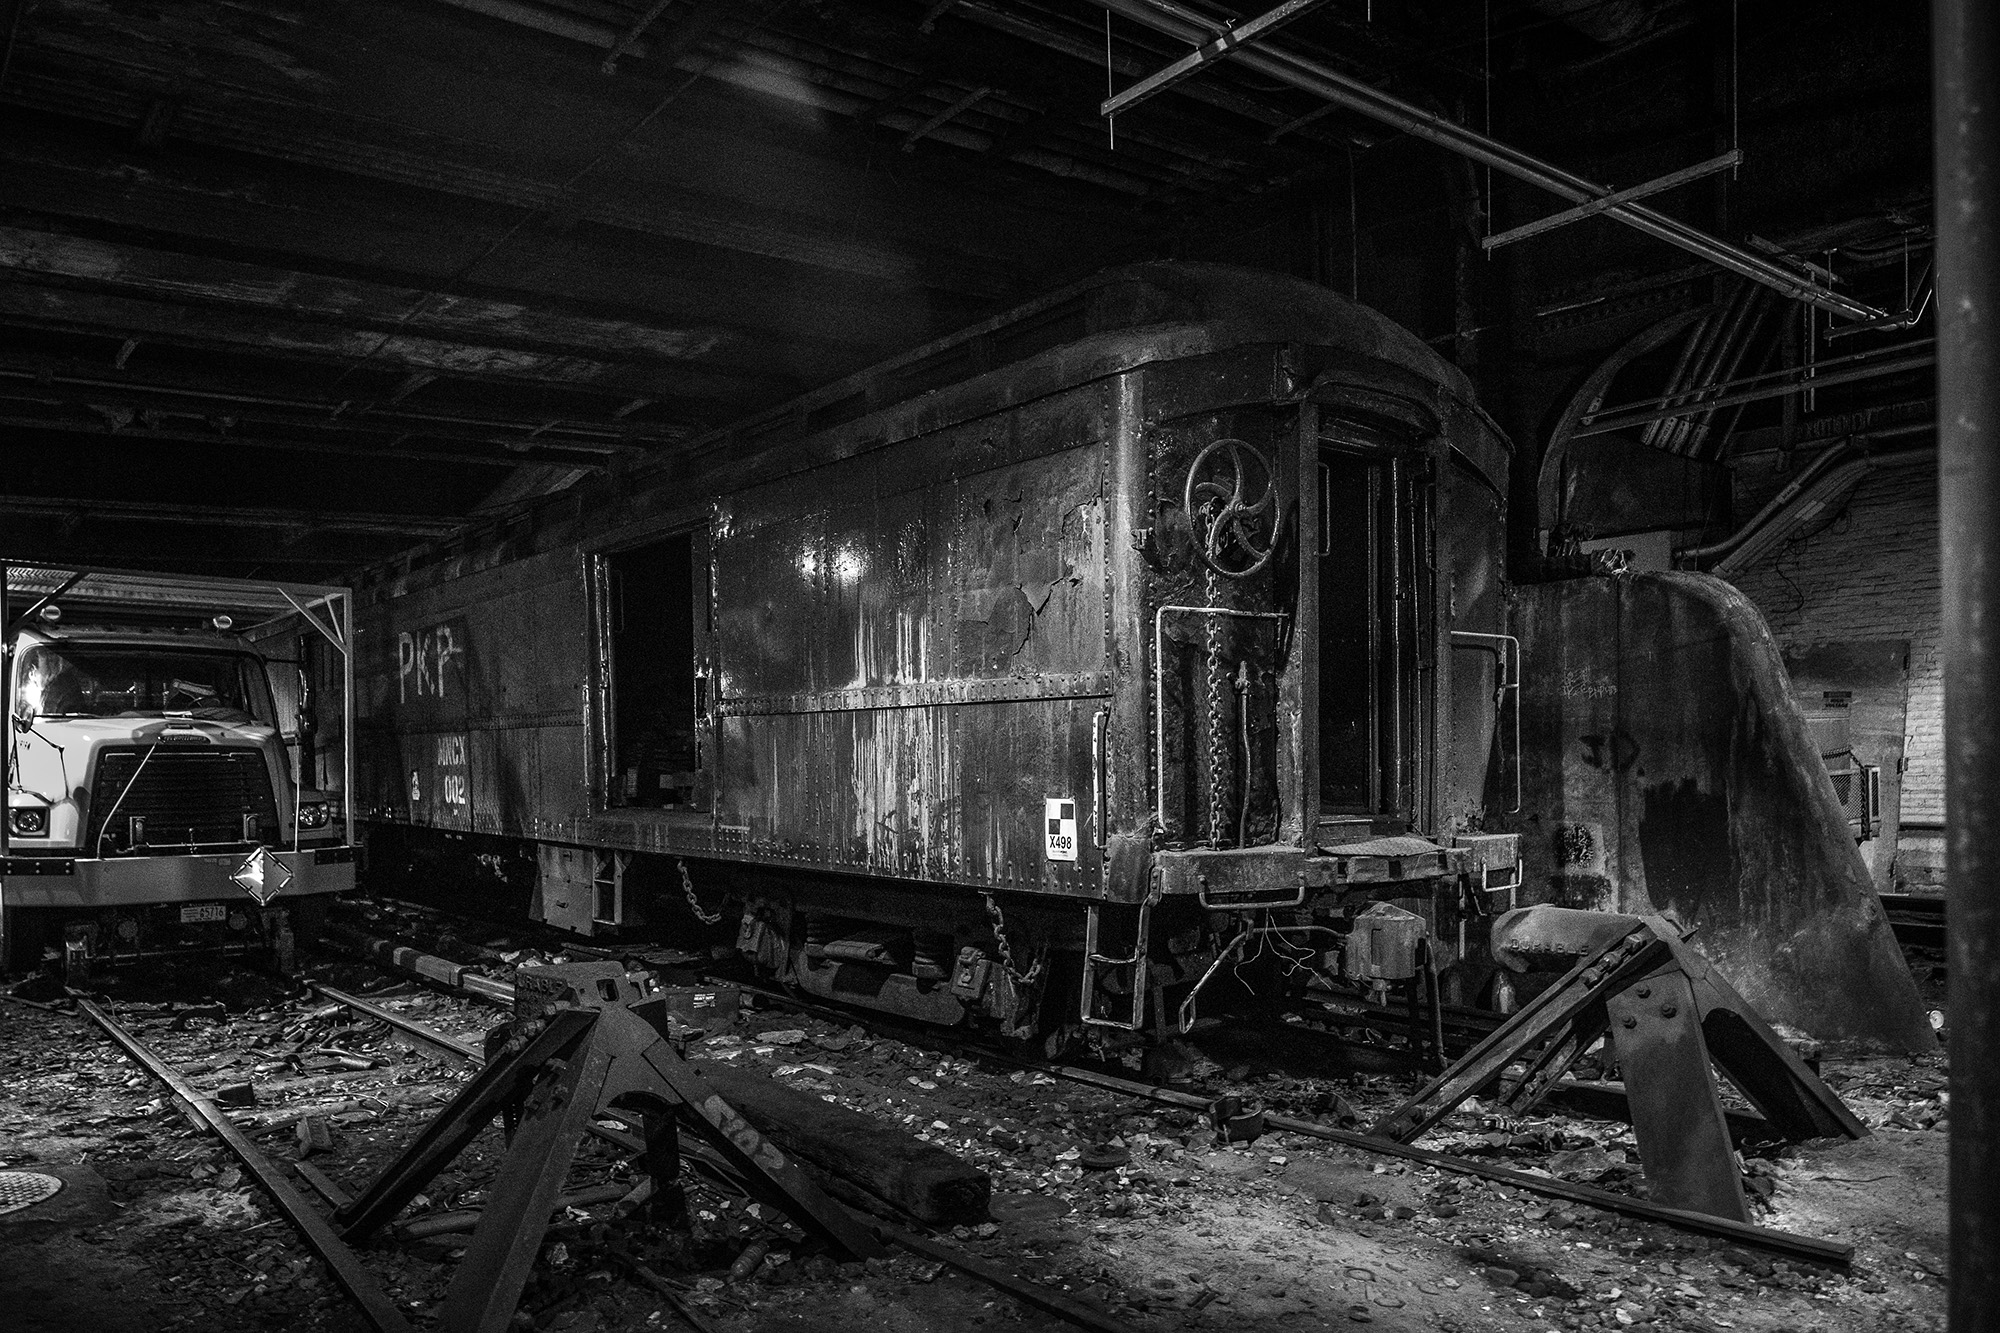 This abandoned railcar located on track 61 was used by FDR during his presidency to transport him, already seated in his Pierce Arrow limousine,to a private station located under the Waldorf Astoria hotel.  Fujifilm X-Pro2 with a Fujinon 16-55mm lens. 1/15 @ f2.8, ISO 6400.